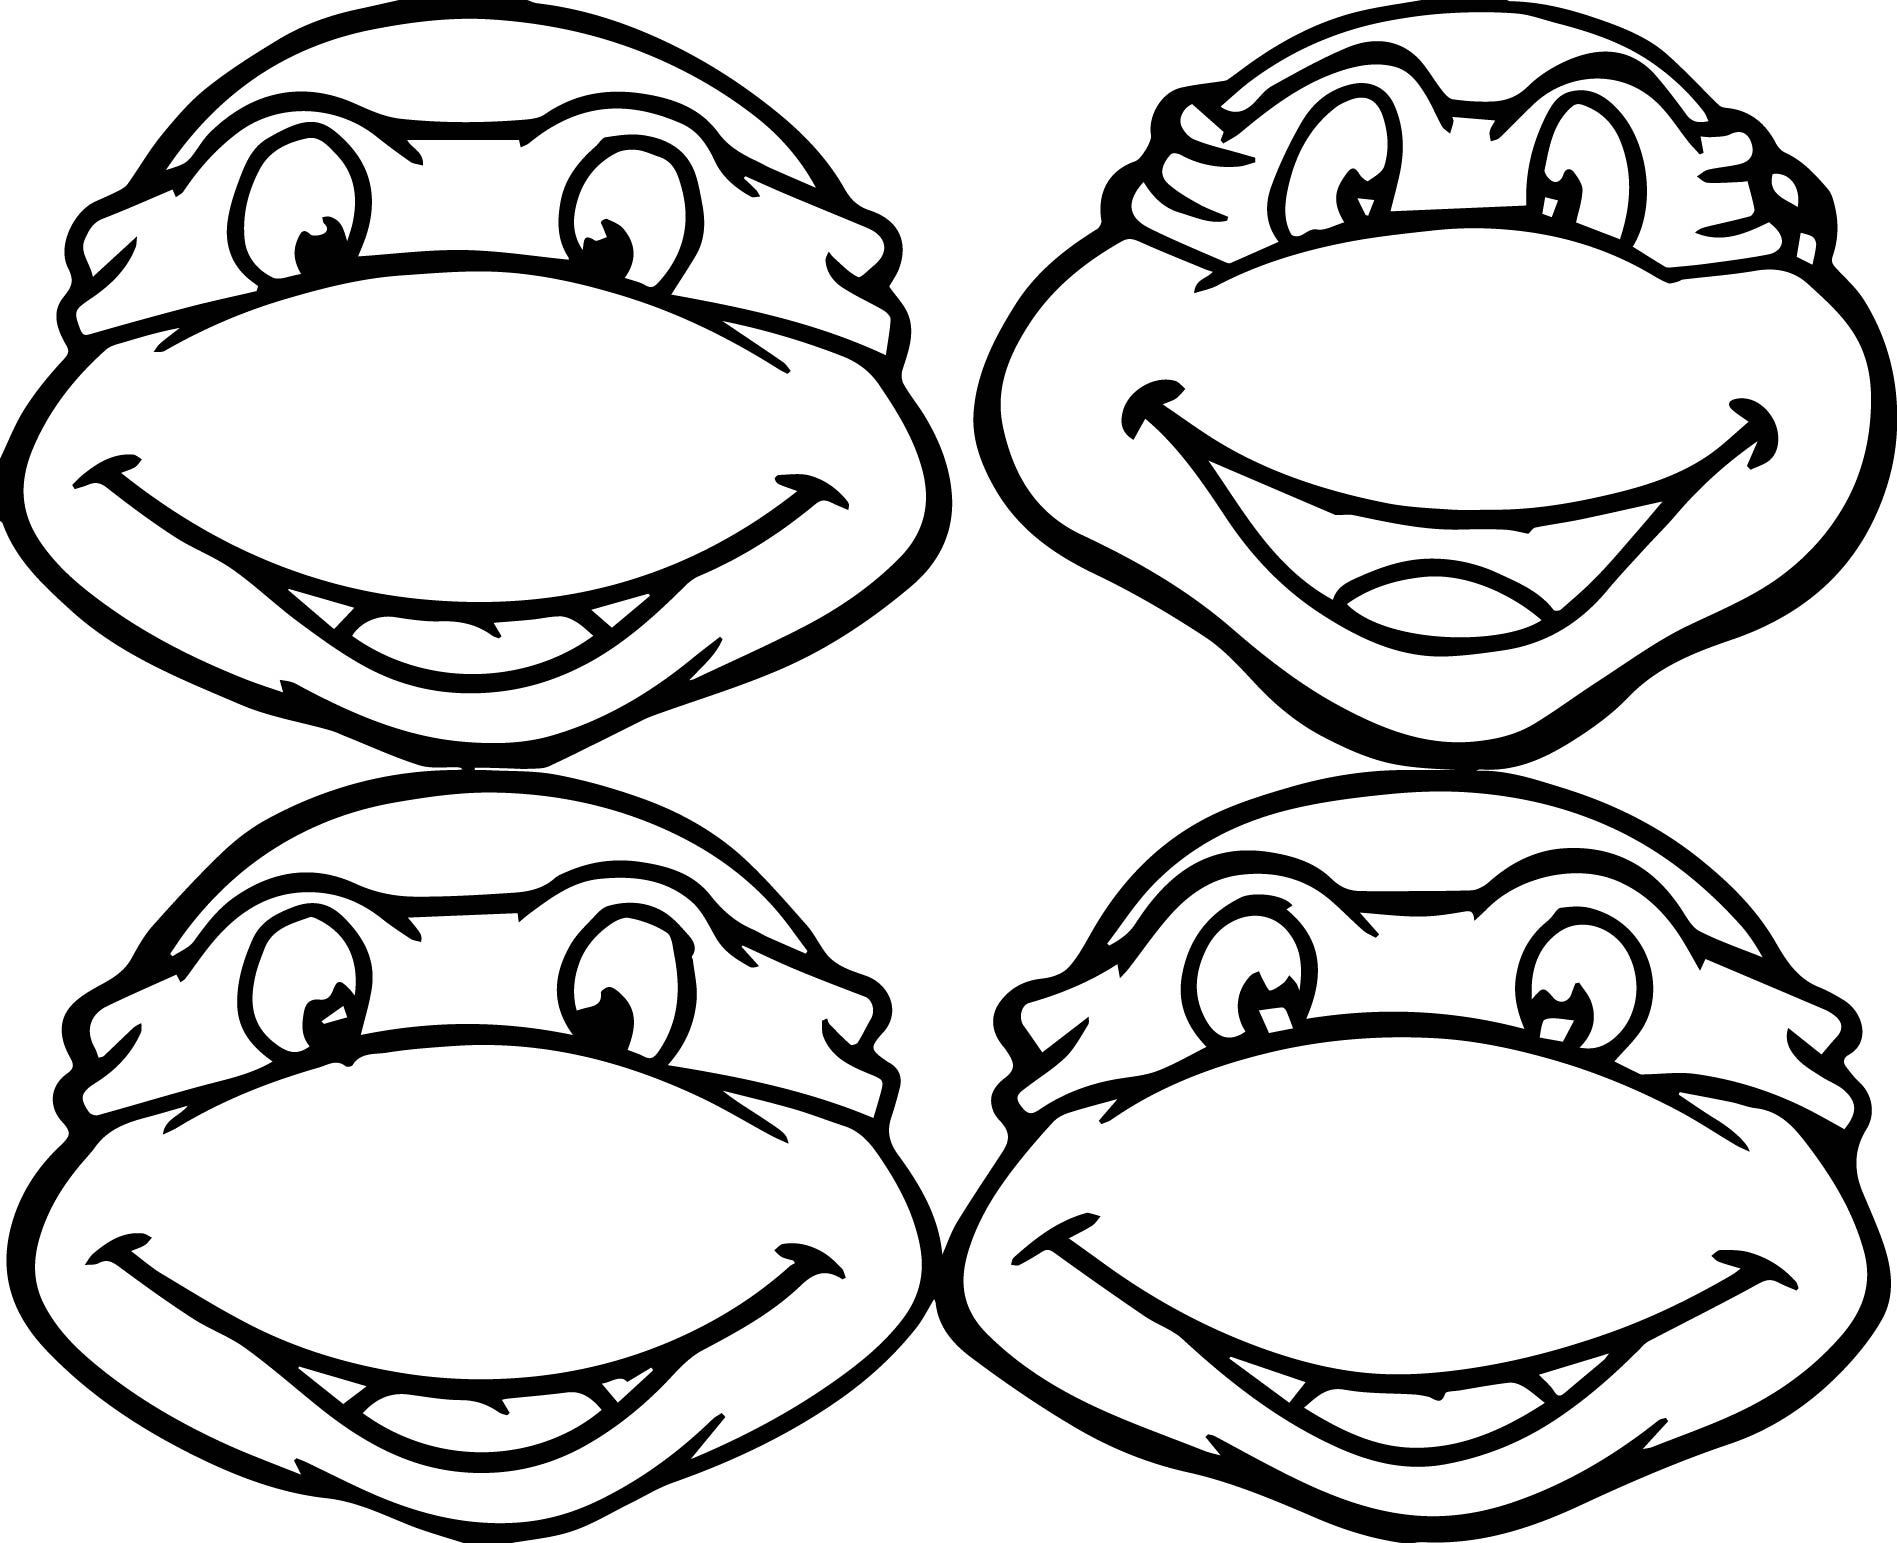 teenage ninja turtles coloring pages get this teenage mutant ninja turtles coloring pages free coloring turtles ninja pages teenage